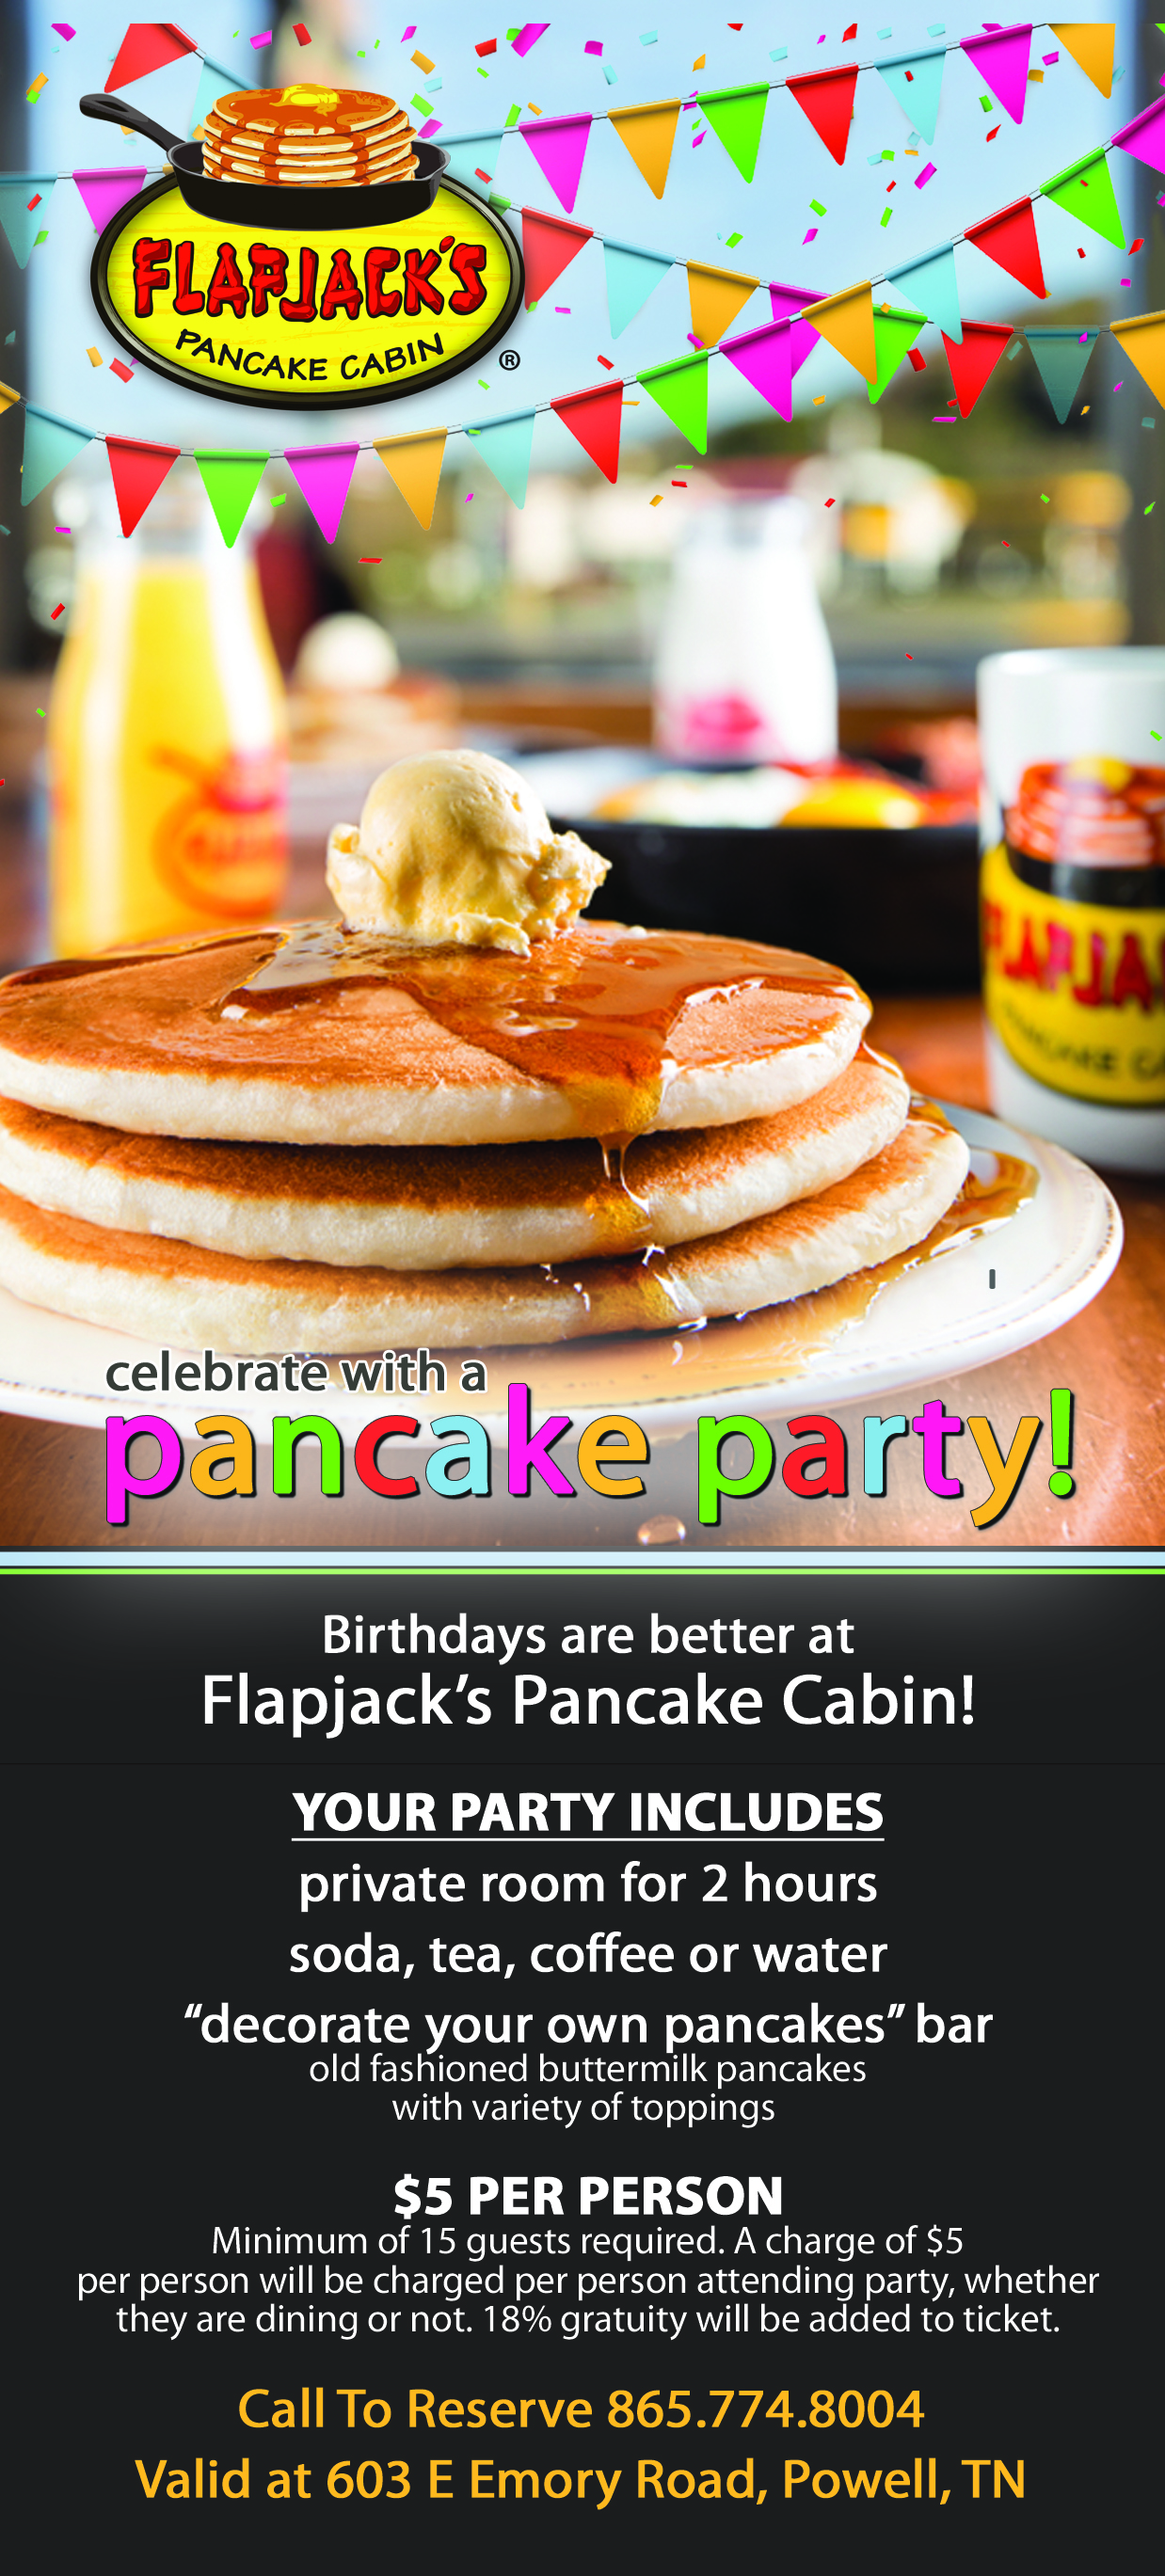 Birthday Parties At Flapjacks On Emory Road In Powell Knoxville TN